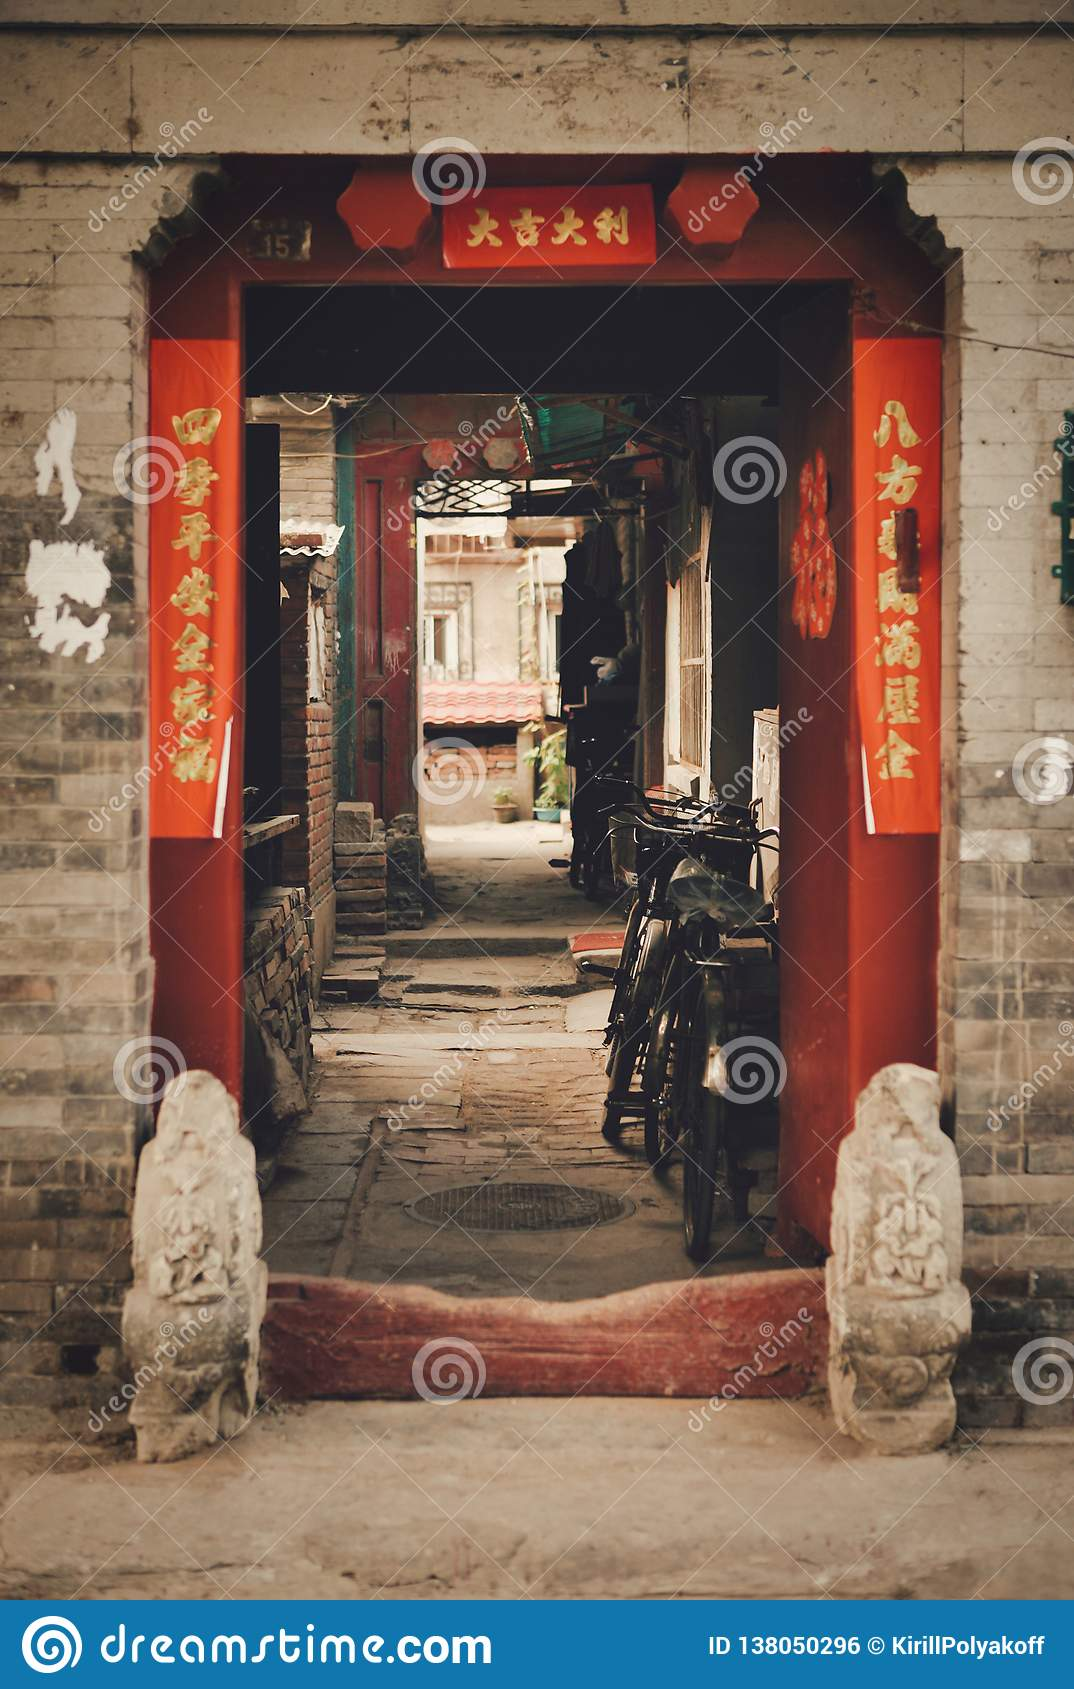 Open gates to Hutong. A sign on both sides of the entrance reads `Welcome`, as well as a wish for happiness and good luck at home.